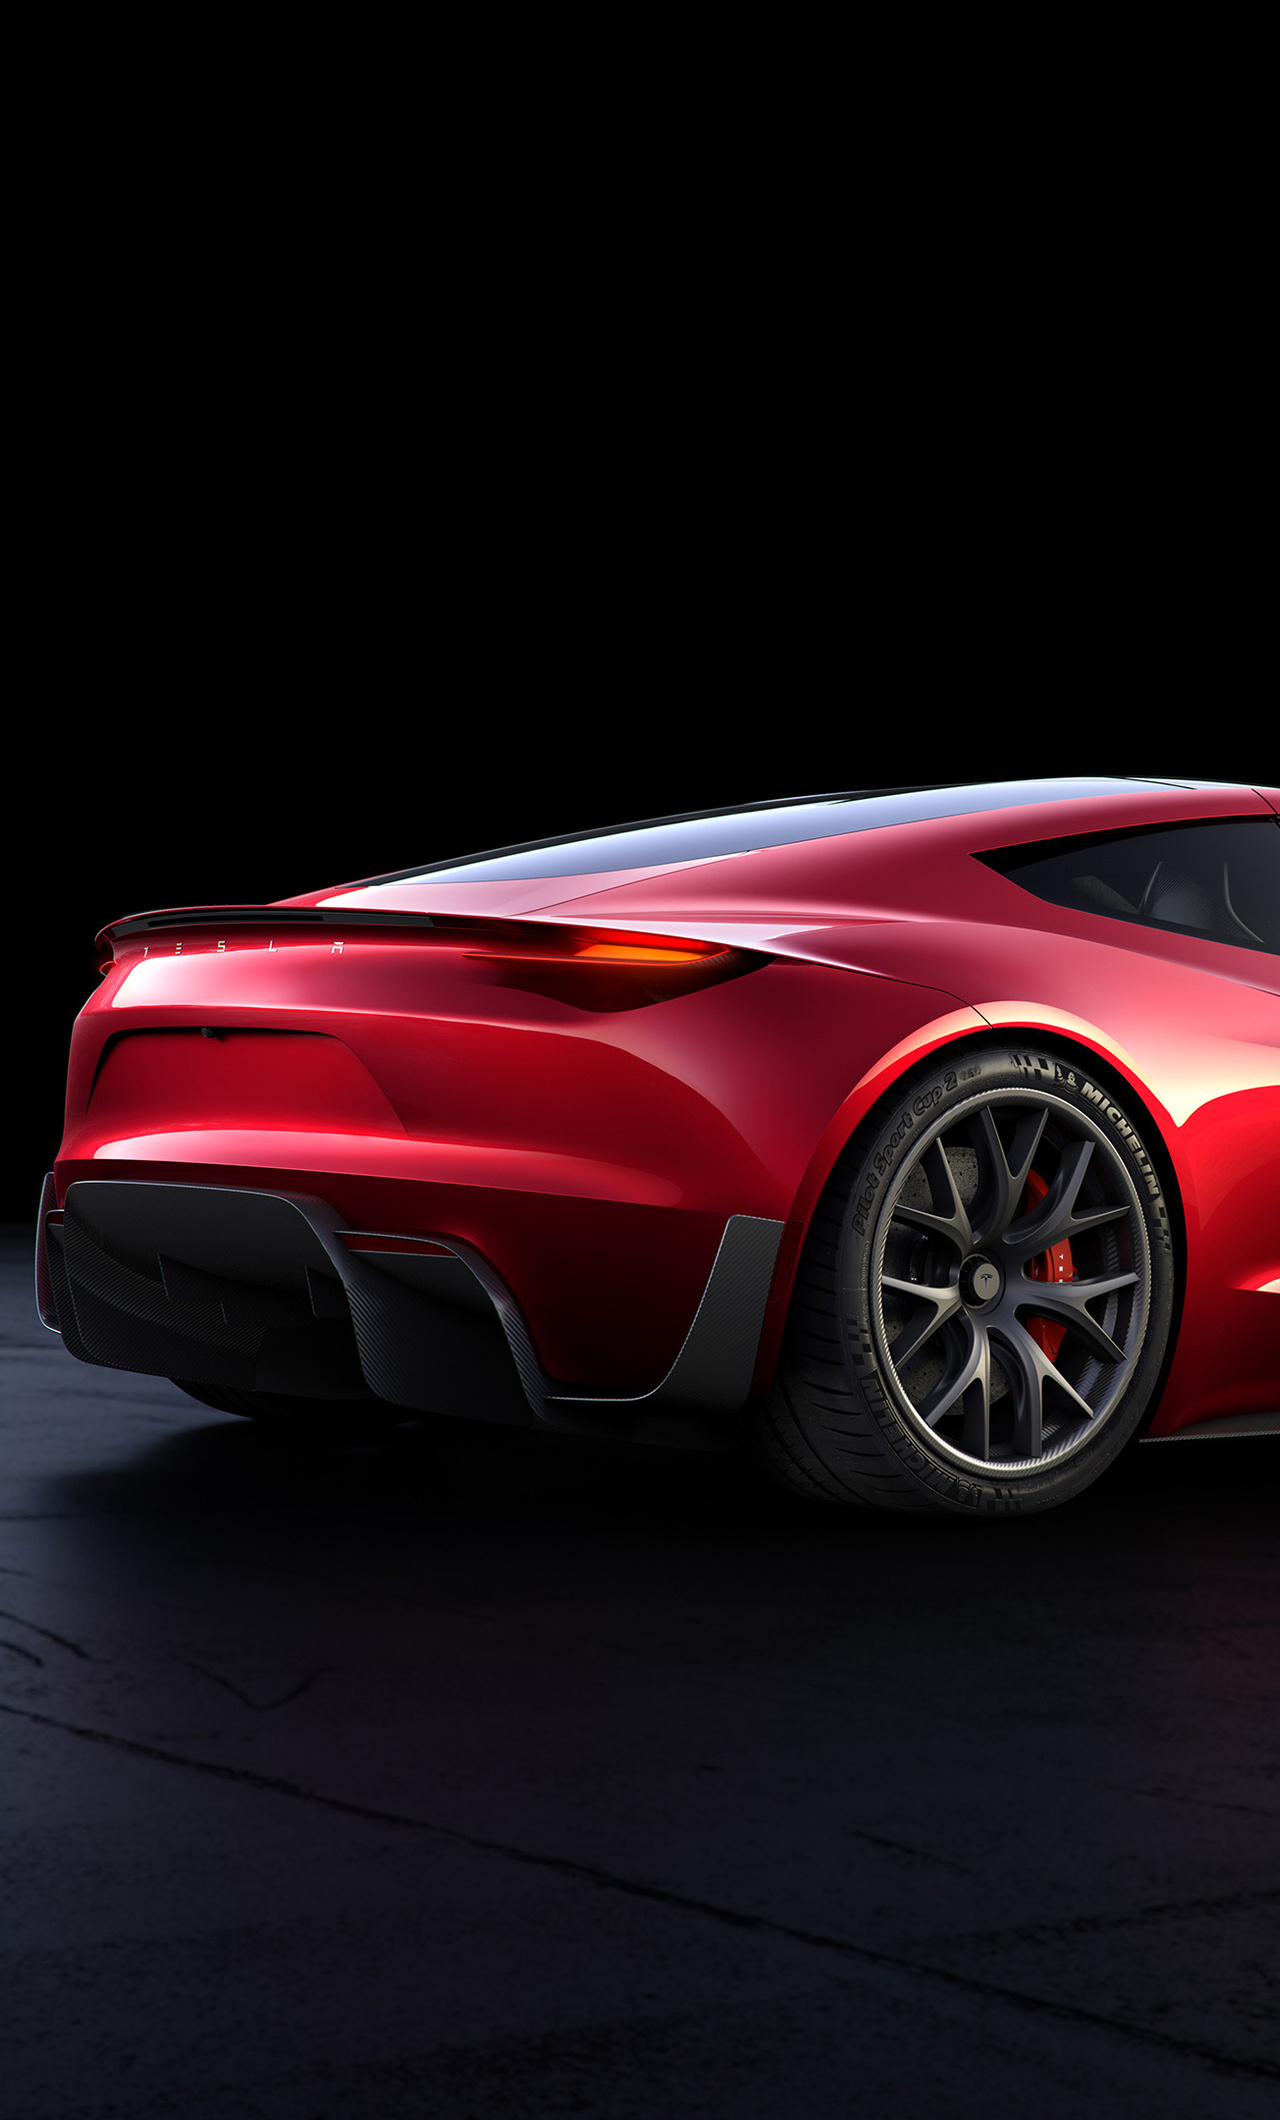 1280x2120 tesla roadster rear look iphone 6 hd 4k wallpapers images backgrounds photos and - Tesla wallpaper android ...